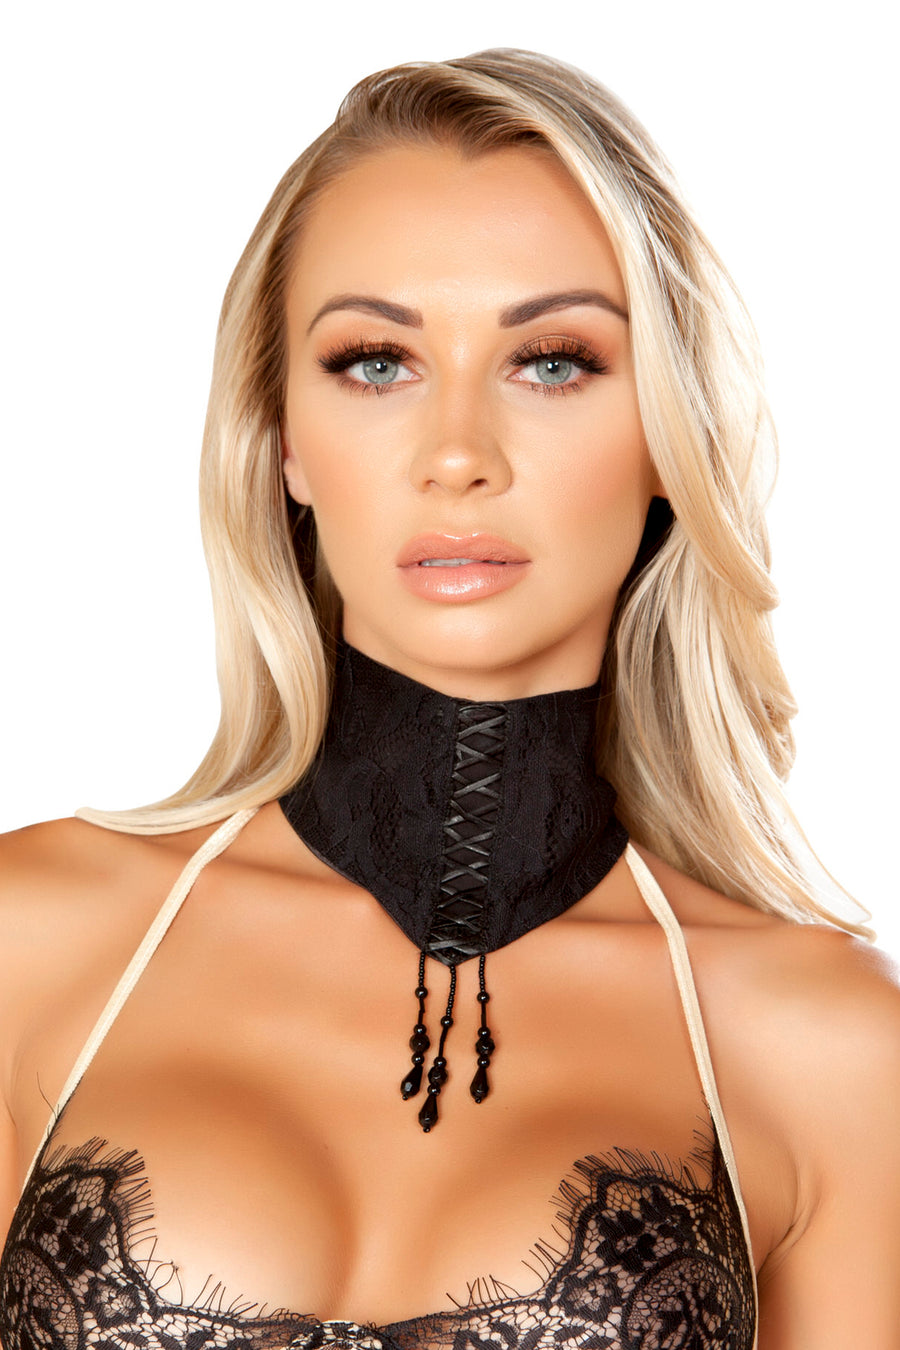 Lace Choker with Lace-Up Detail & Dangling Beads - Rave Chokers, Roma - YourLamode